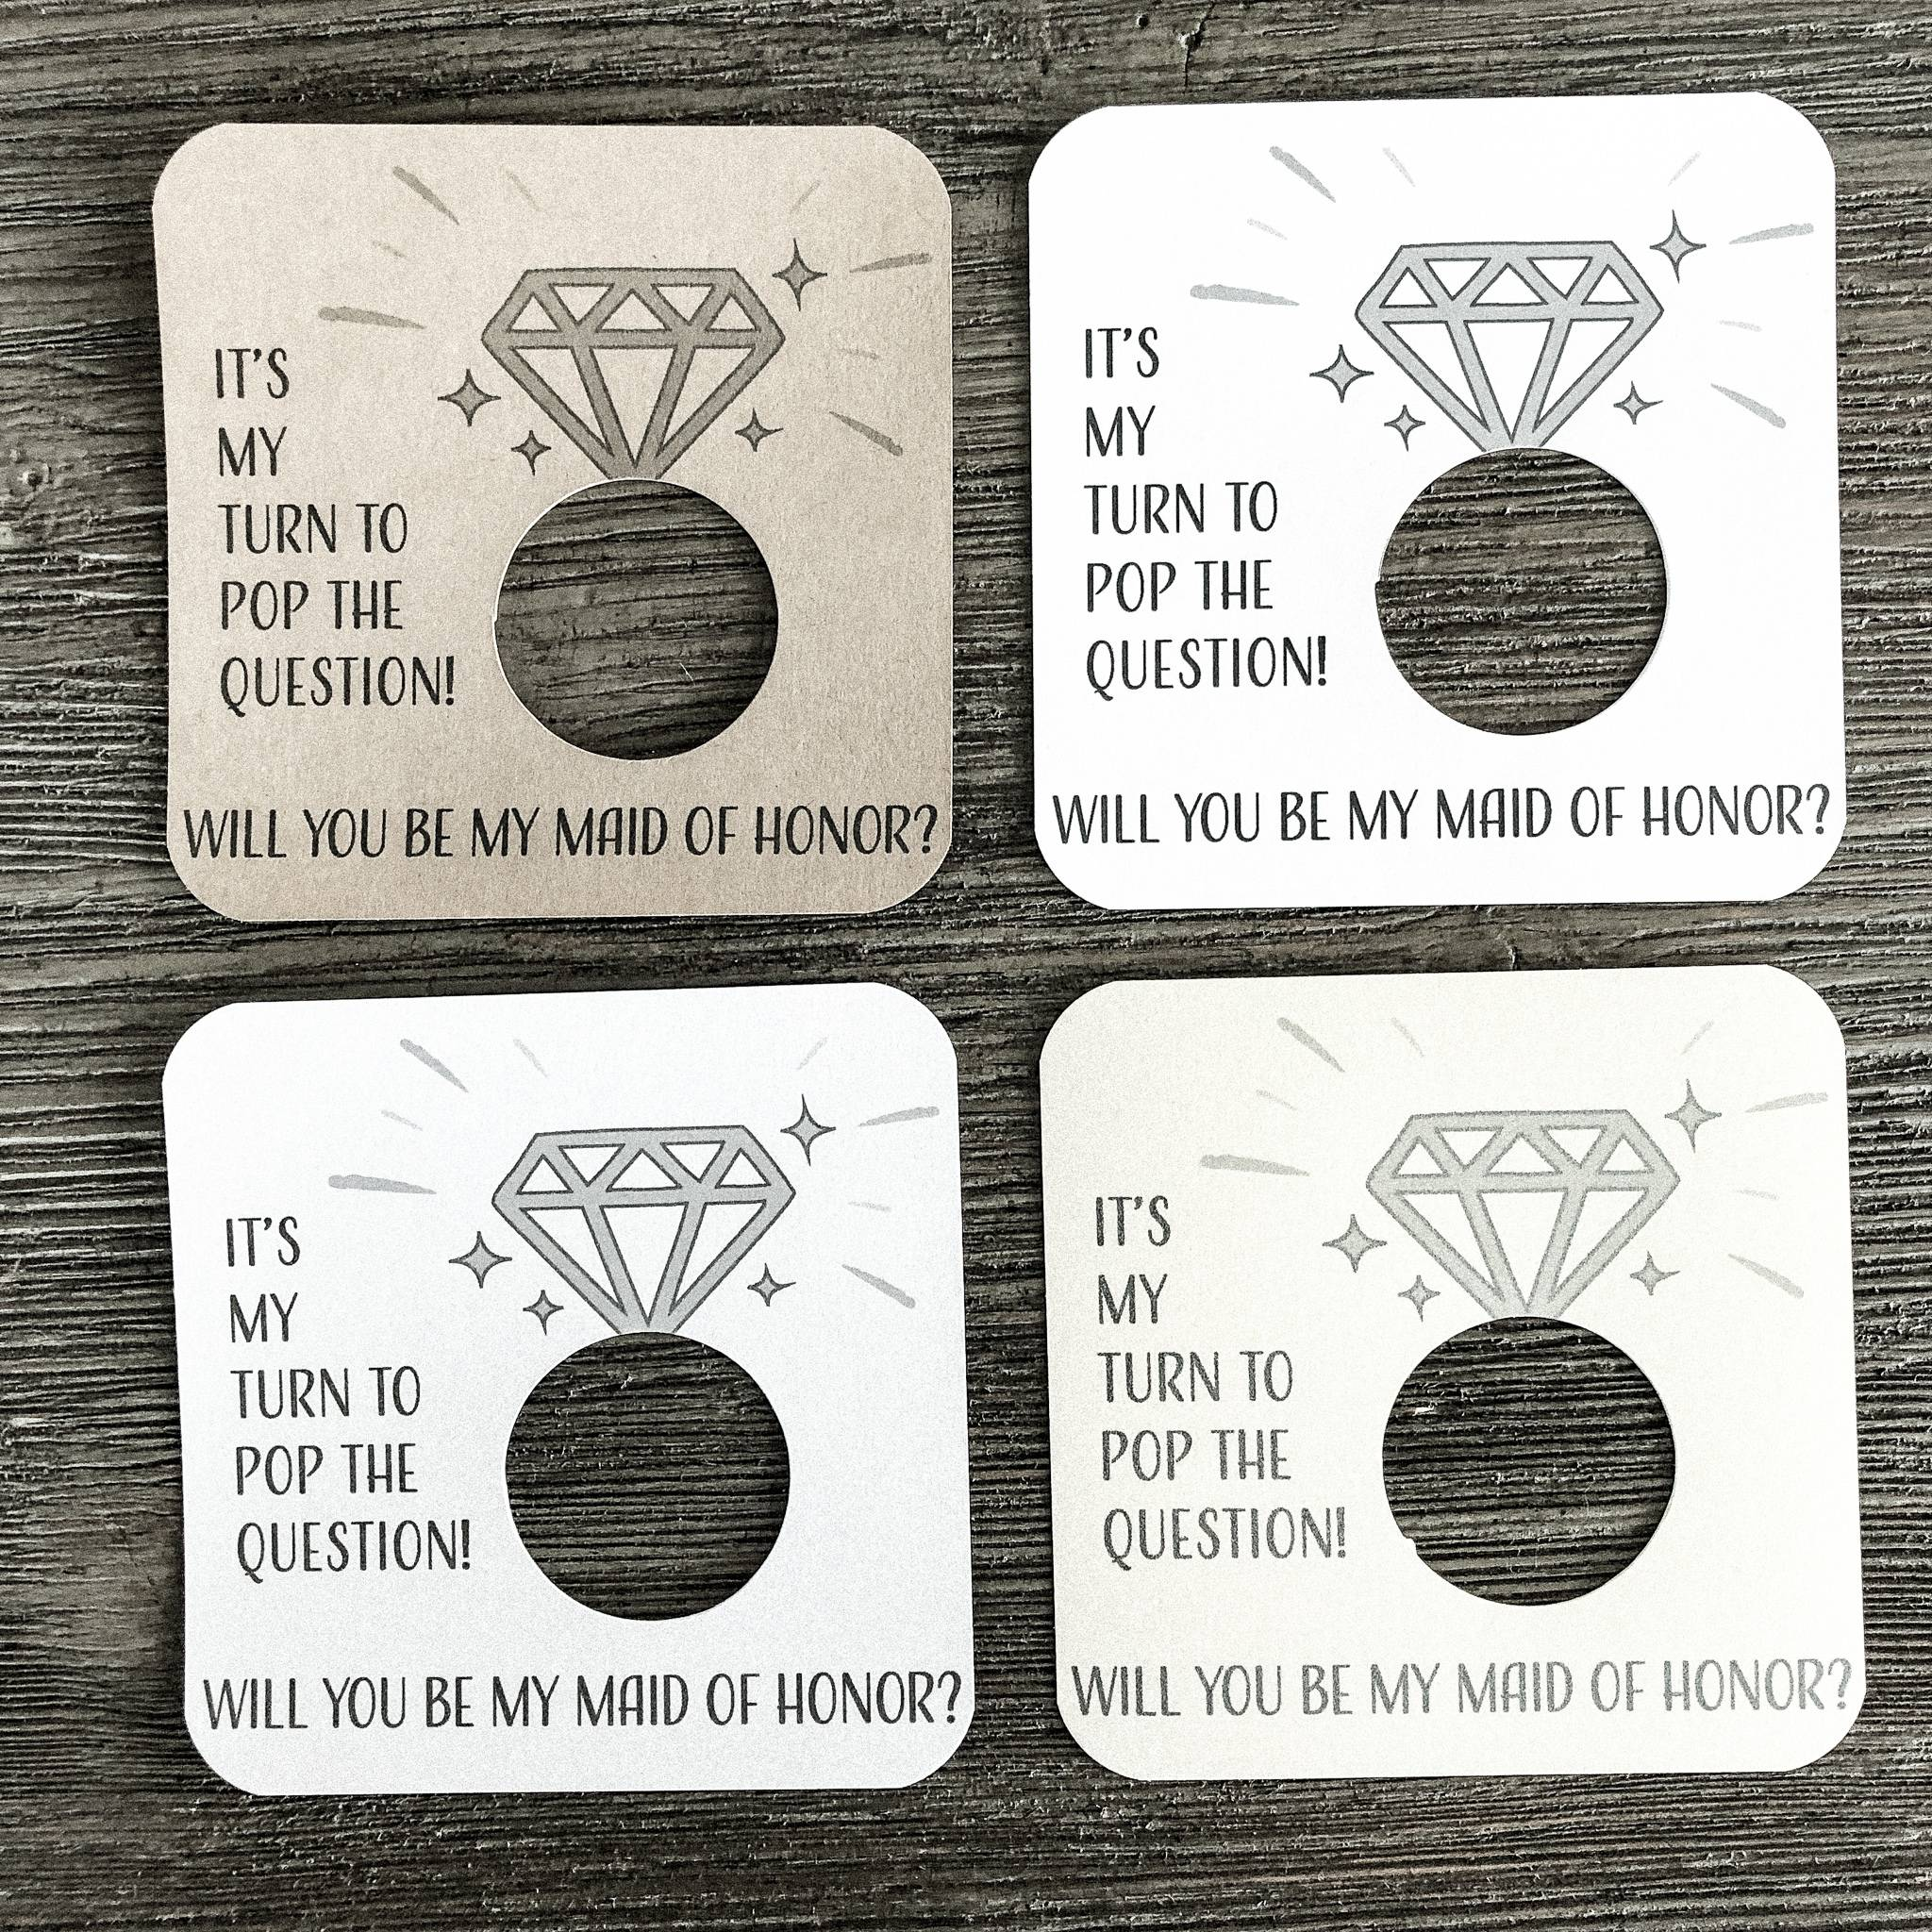 It's my turn to pop the question! Will you be my maid of honor? Card stock